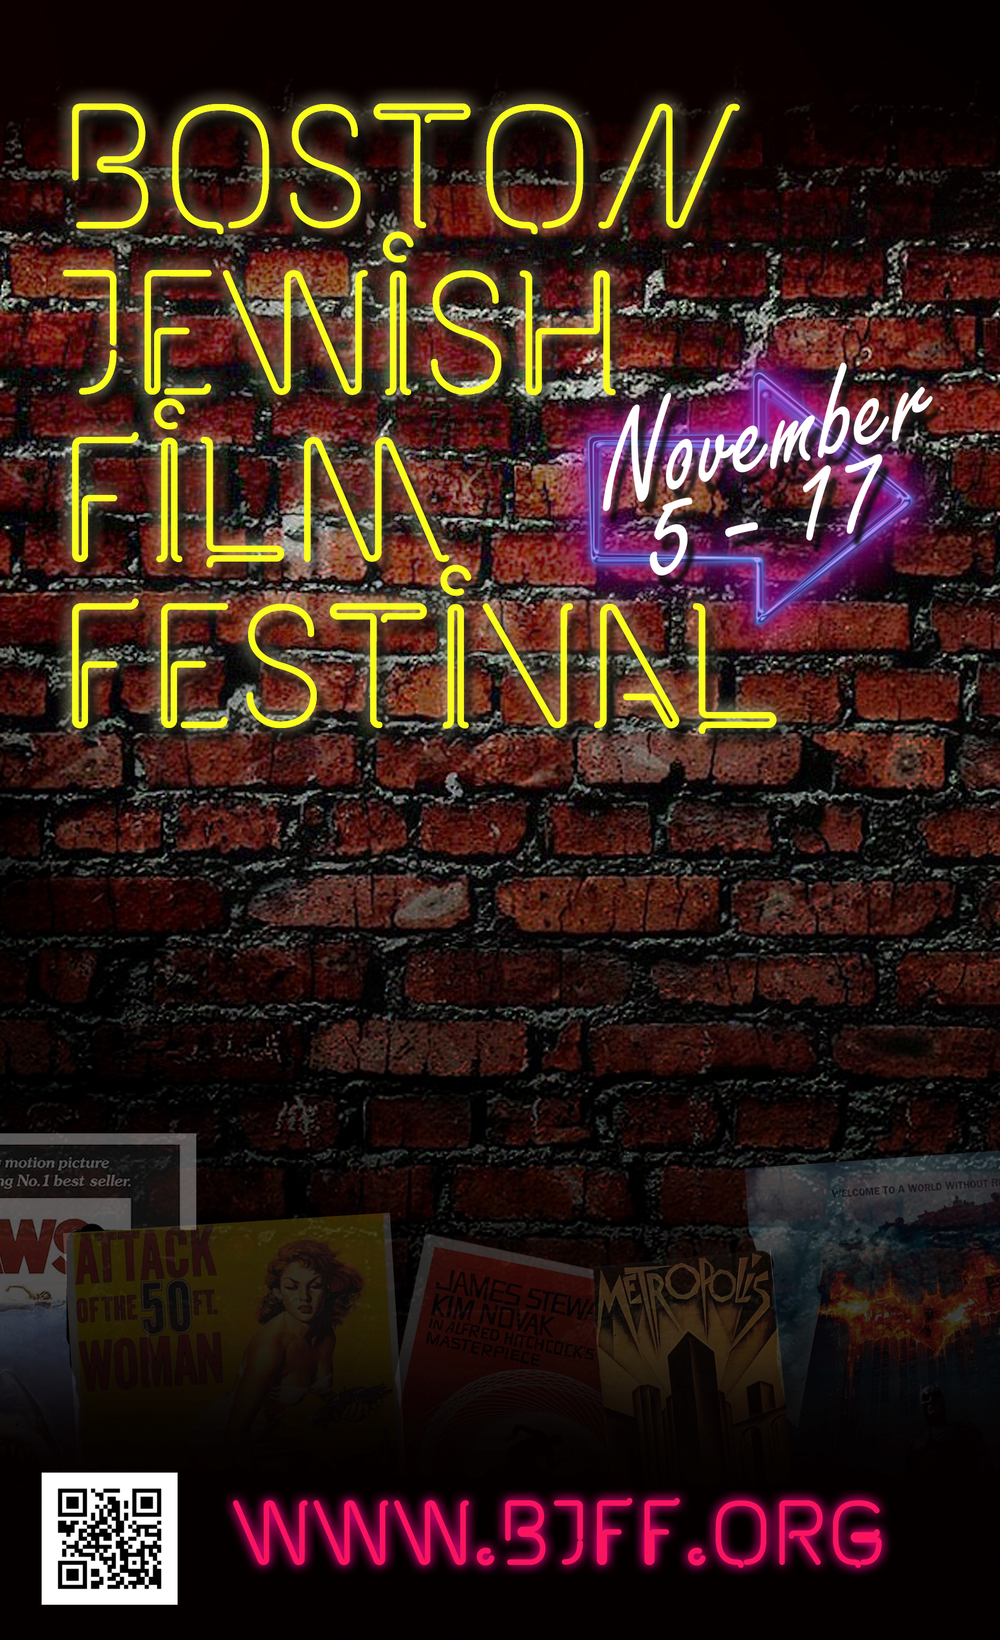 Festival Brochure Cover, Boston Jewish Film Festival, 2014